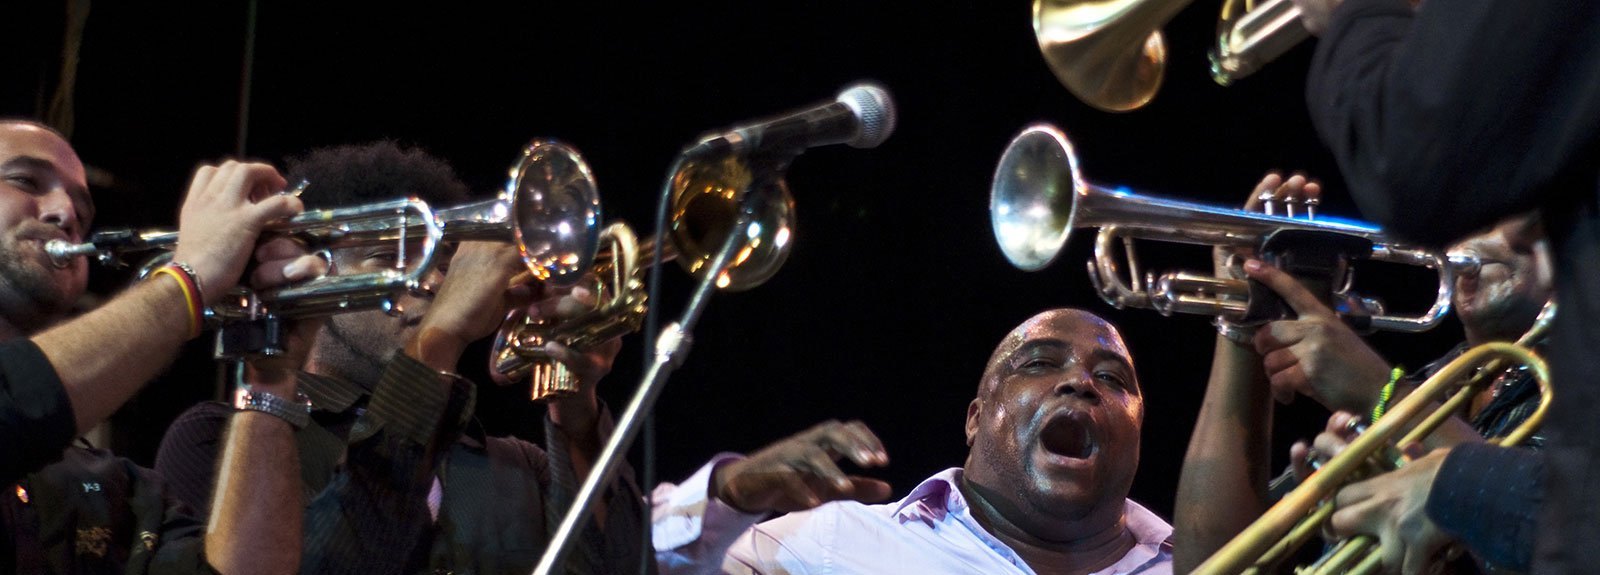 Alexander Abreu surround by trumpets on a Jazz festival